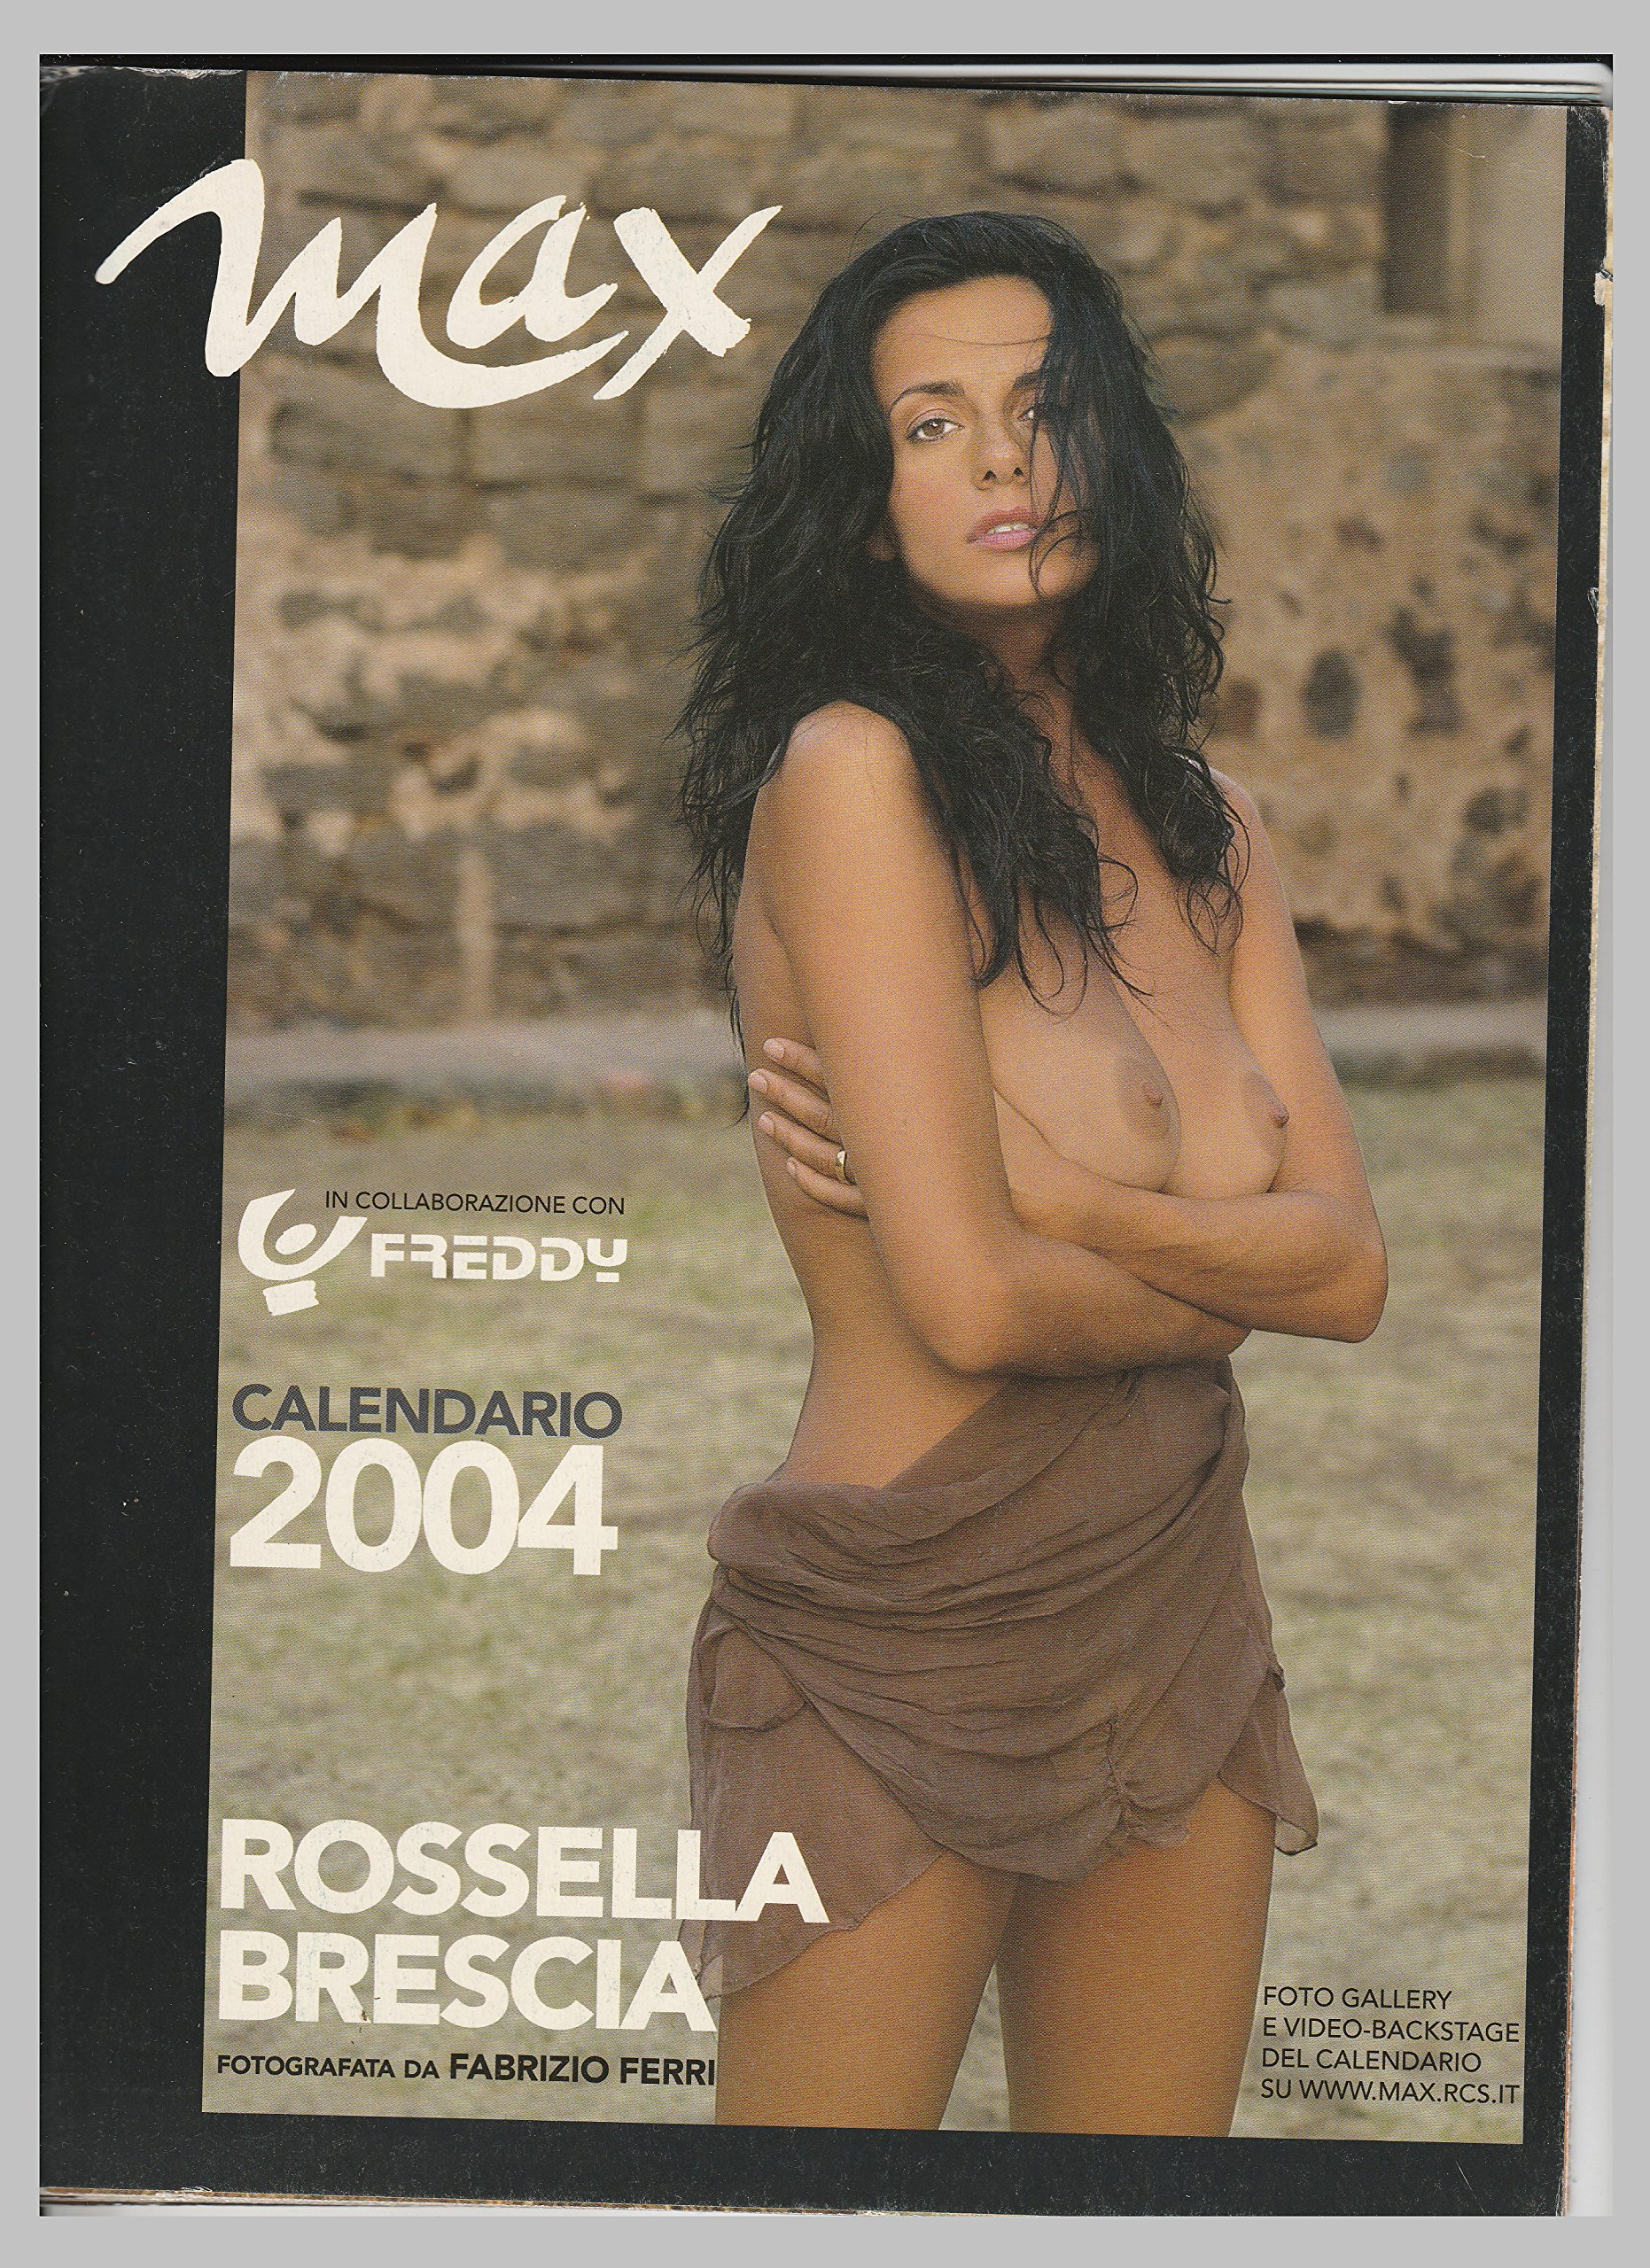 Elisabetta Canalis Backstage Calendario.Calendario Max Con Rossella Brescia 2004 Amazon It